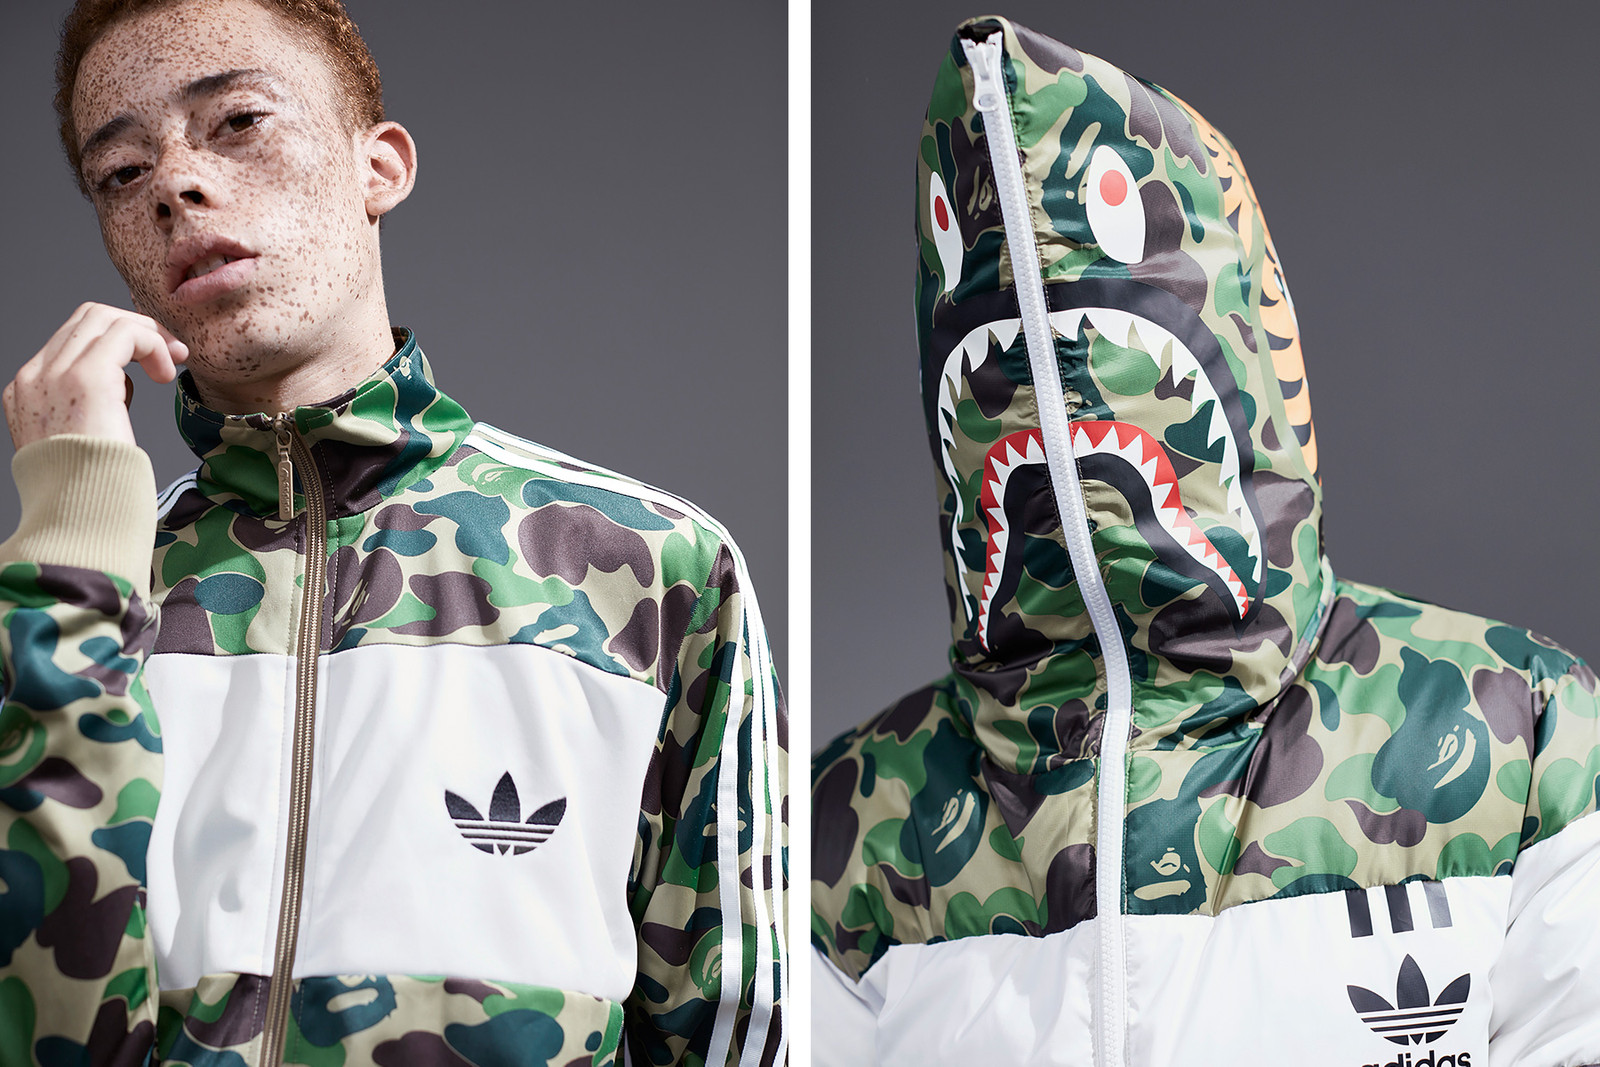 comprare popolare 7c9a5 6d1db adidas Originals x BAPE 2016 Fall Winter Collection | HYPEBEAST